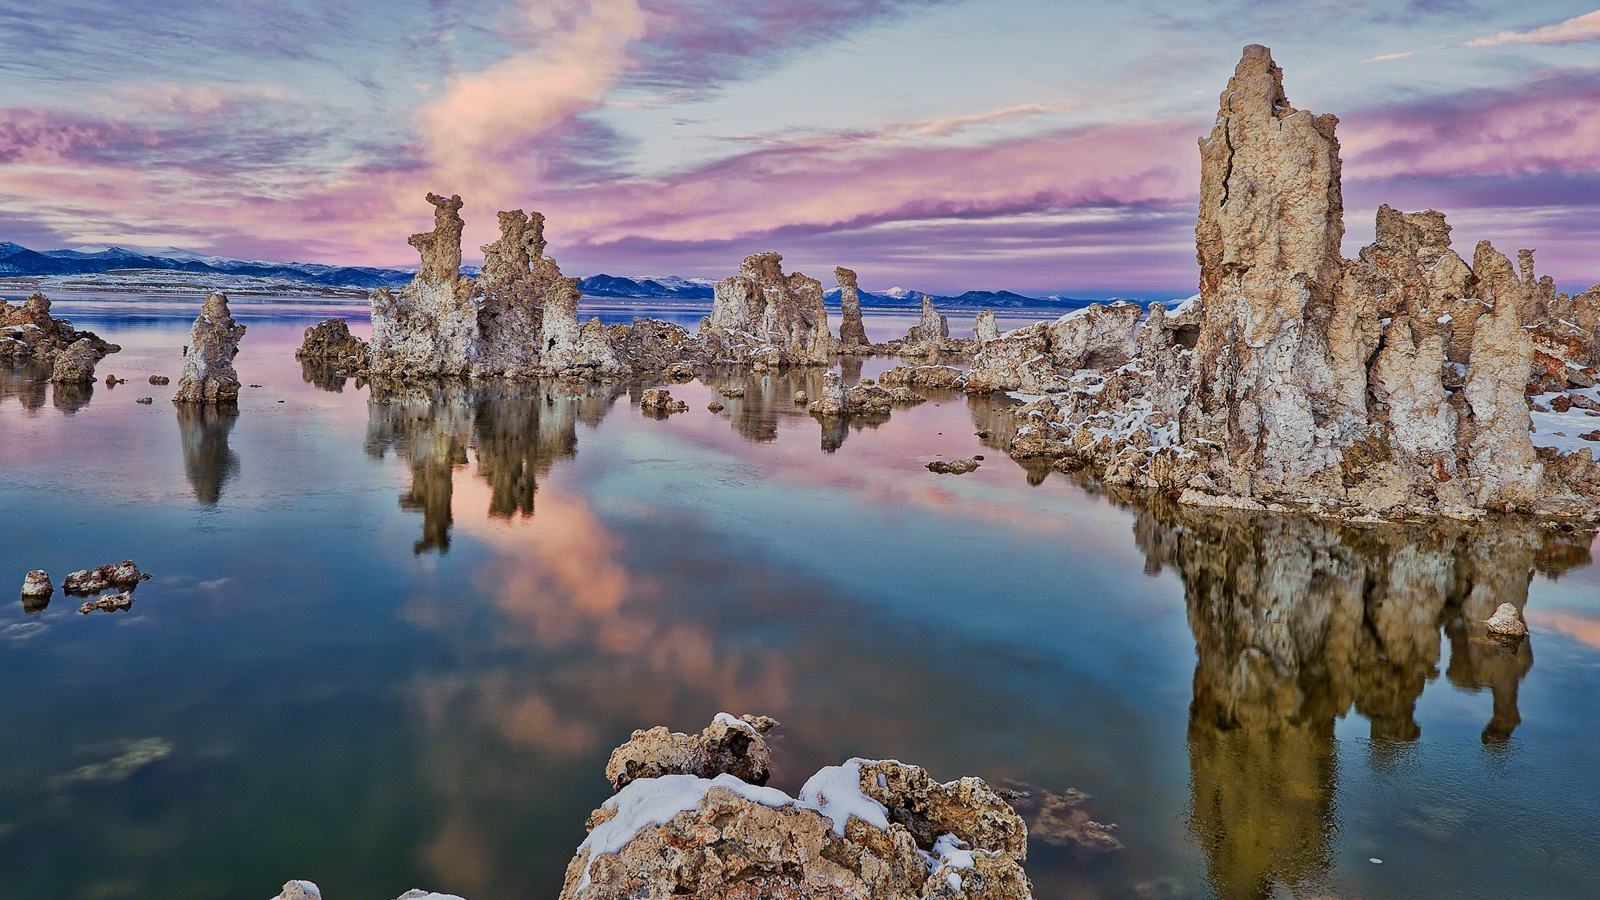 Inyo County (Sierras) Camping -     CLICK HERE TO SIGN UP        Number of participants (tickets):  10   Ticket Price:   FREE! (with deposit required)    Trip Description:  Howdy Wildling! We hope you will be able to join us on an awesome Adventure Trip!! We will make our way Eastward toward the beautiful Eastern Sierras. Departure will be the morning of Wednesday, September 18 and we will return to campus on Friday evening, September 20. Total of 2 nights camping and 3 days in the great outdoors. We will be camping! - car camping as we call it - but this does not mean we will be sleeping in cars. Don't worry we will be comfy and cozy in tents. Each day, we will drive to different areas just south of Mono Lake. We will spend our days sweating a bit on awesome day hikes (think less than 8 miles and around 1000 elevation gain) then head to a local hot spring! Get ready to explore some of the beautiful natural area around Santa Clara that we are so fortunate to visit. AND get pumped to foster new friendships as you start this new chapter of life. No better way to get to know someone than spending time with them outdoors! No prior camping/outdoor experience is required, just a great attitude ready for some hiking, camping, and adventure!   Activities:  Hiking; Car Camping   Experience/Fitness Level:  Beginner Car Camping; No prior camping/outdoor experience required.   Leaders:  Nick Fazio and Ari Cepuli